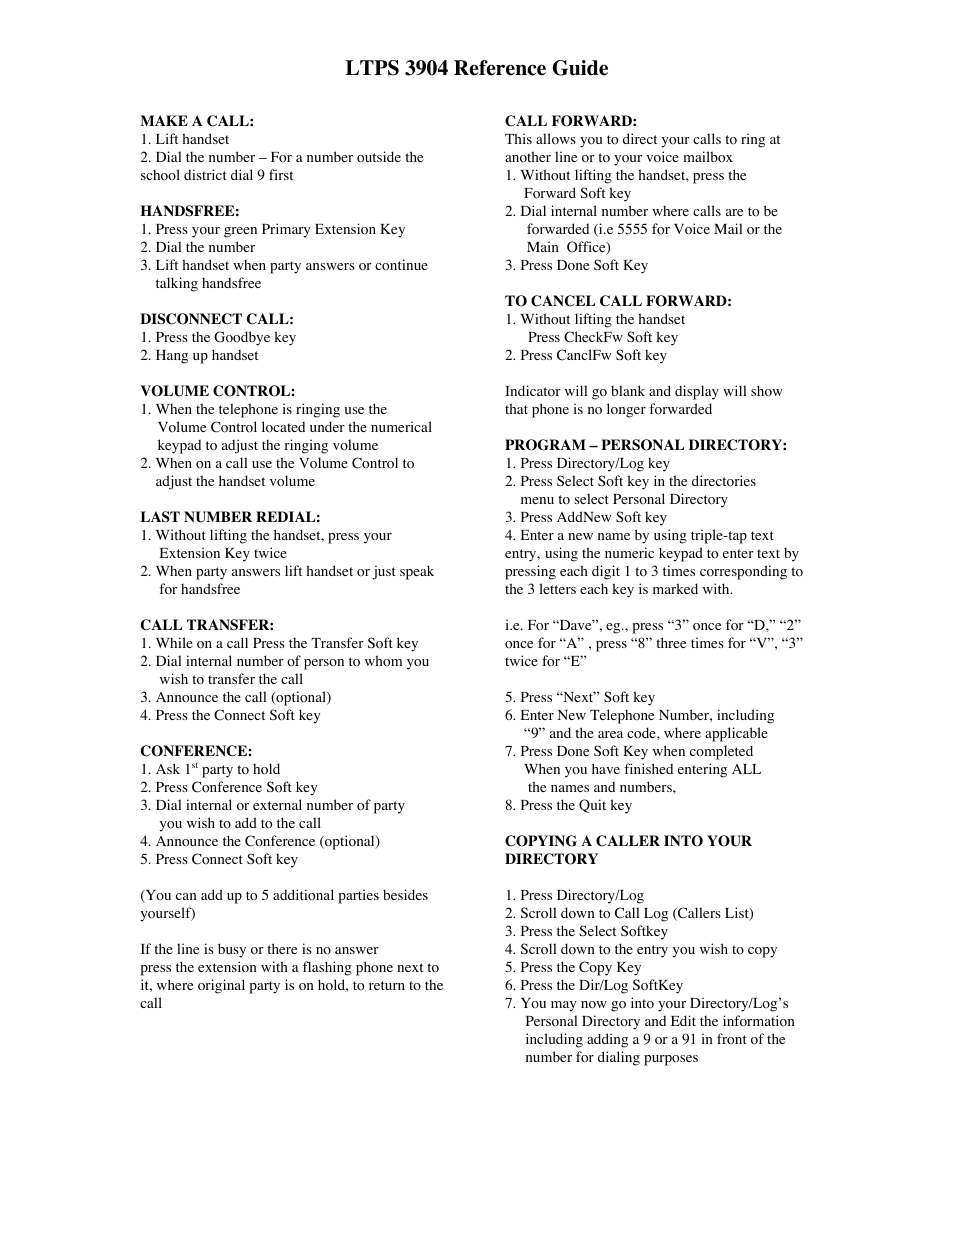 Ltps 3904 reference guide | Nortel Networks 3904 User Manual